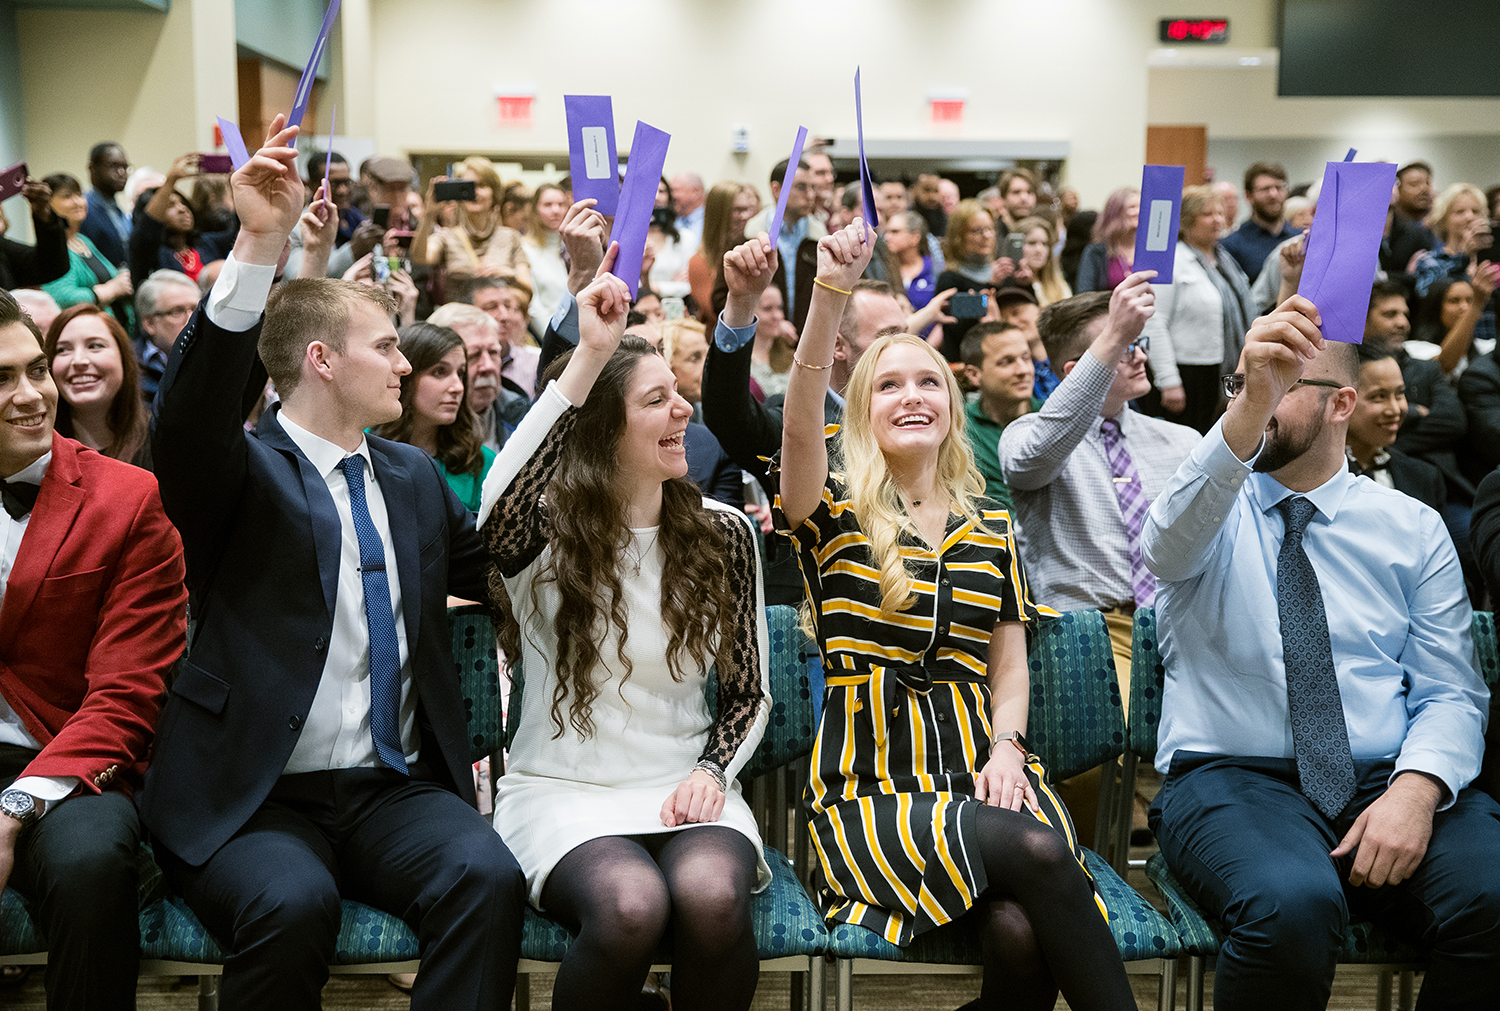 Southern Illinois University School of Medicine students hold up the purple envelopes that contain the names of the institutions where they'll spend their medical residency during a Match Day ceremony at the Memorial Center for Learning and Innovation Friday, March 15, 2019. Sixty-three SIU seniors were part of more than 20,000 students nationwide who learned the results of the 2019 National Residency Match Program at the same time. Students will begin their residency training July 1, 2019. [Ted Schurter/The State Journal-Register]